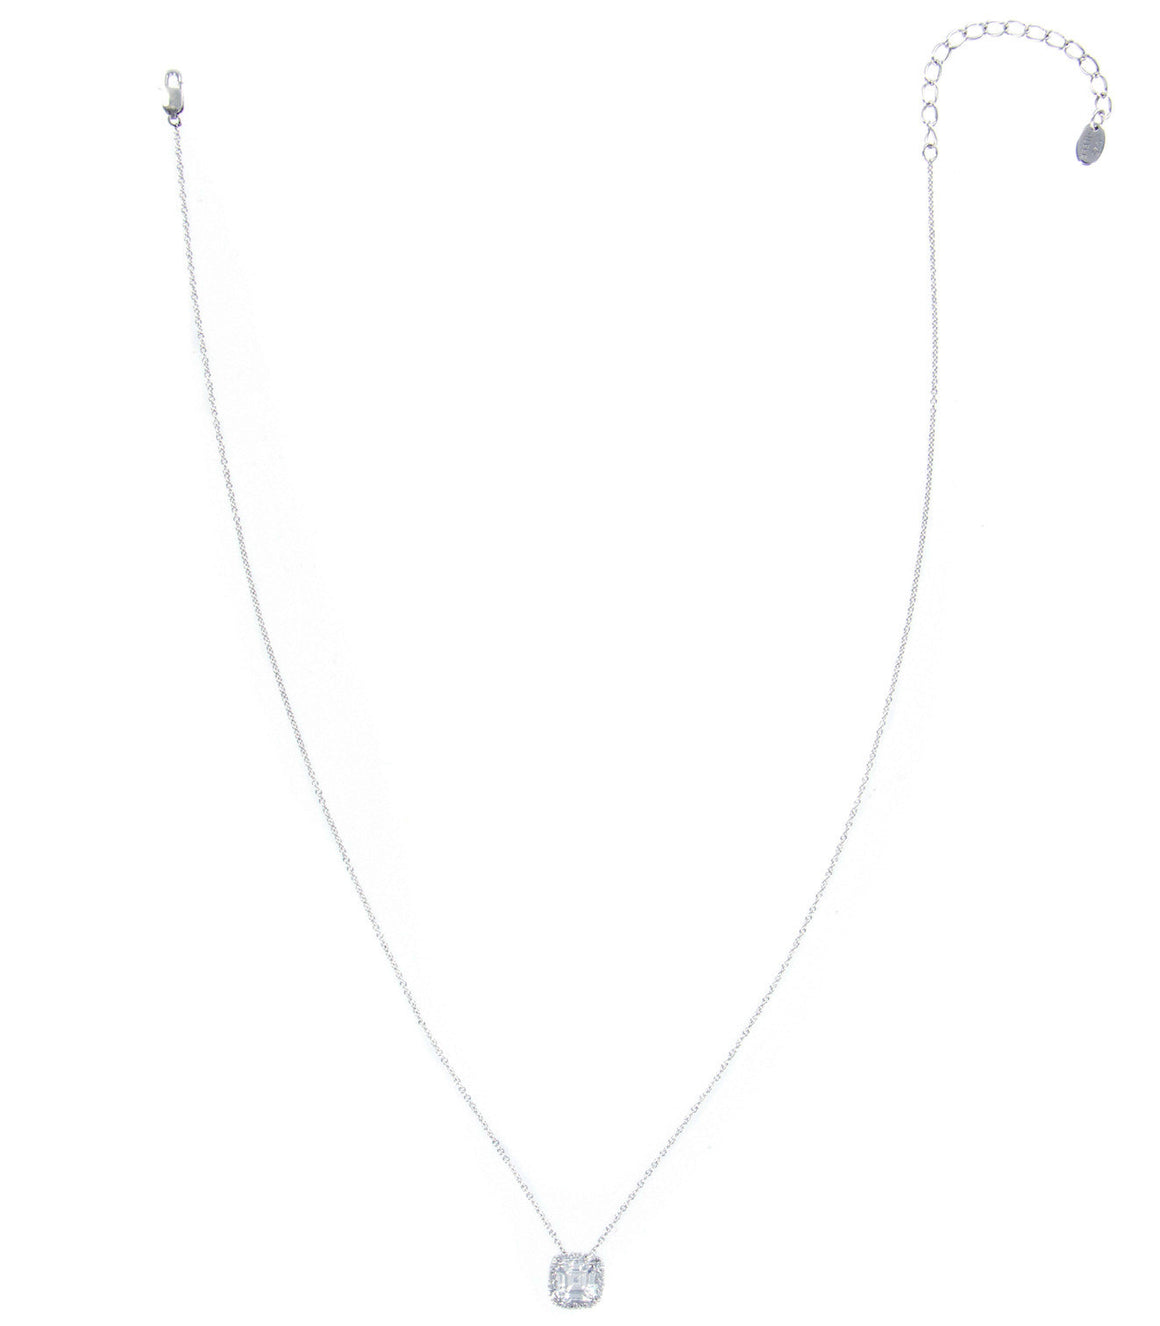 925 sterling silver with cubic zirconia Pendant Necklace